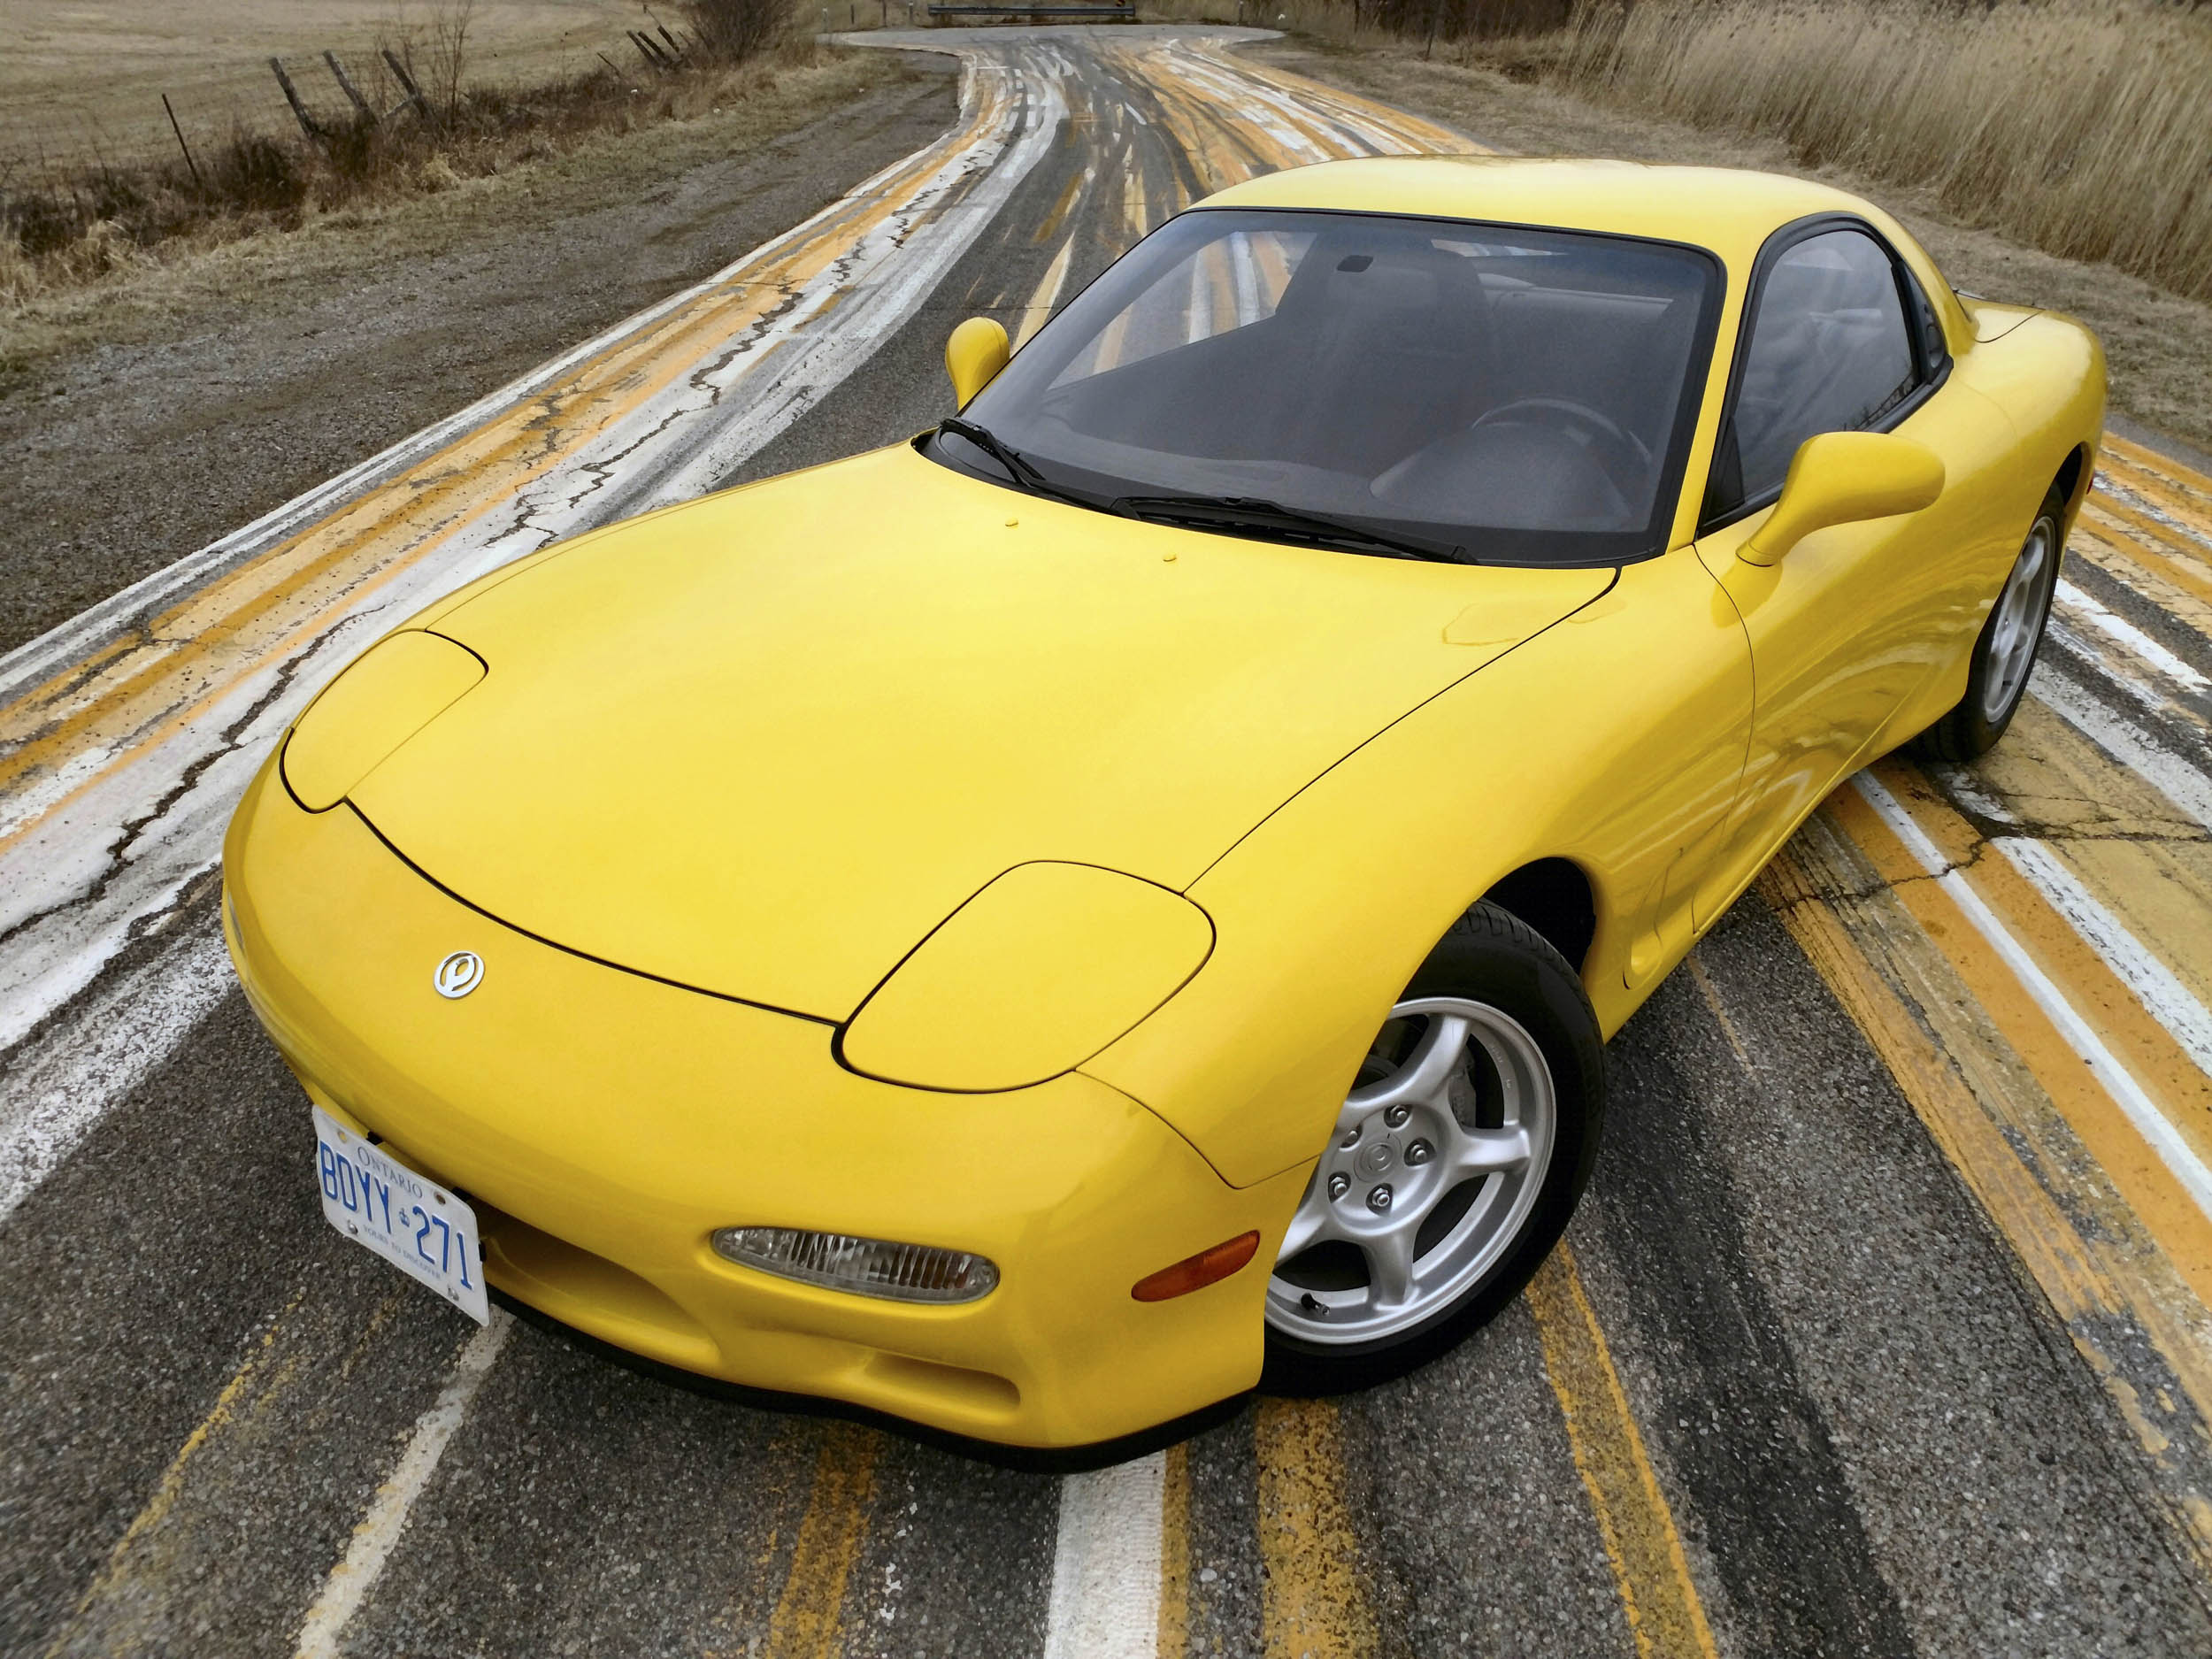 Mazda RX-7 front 3/4